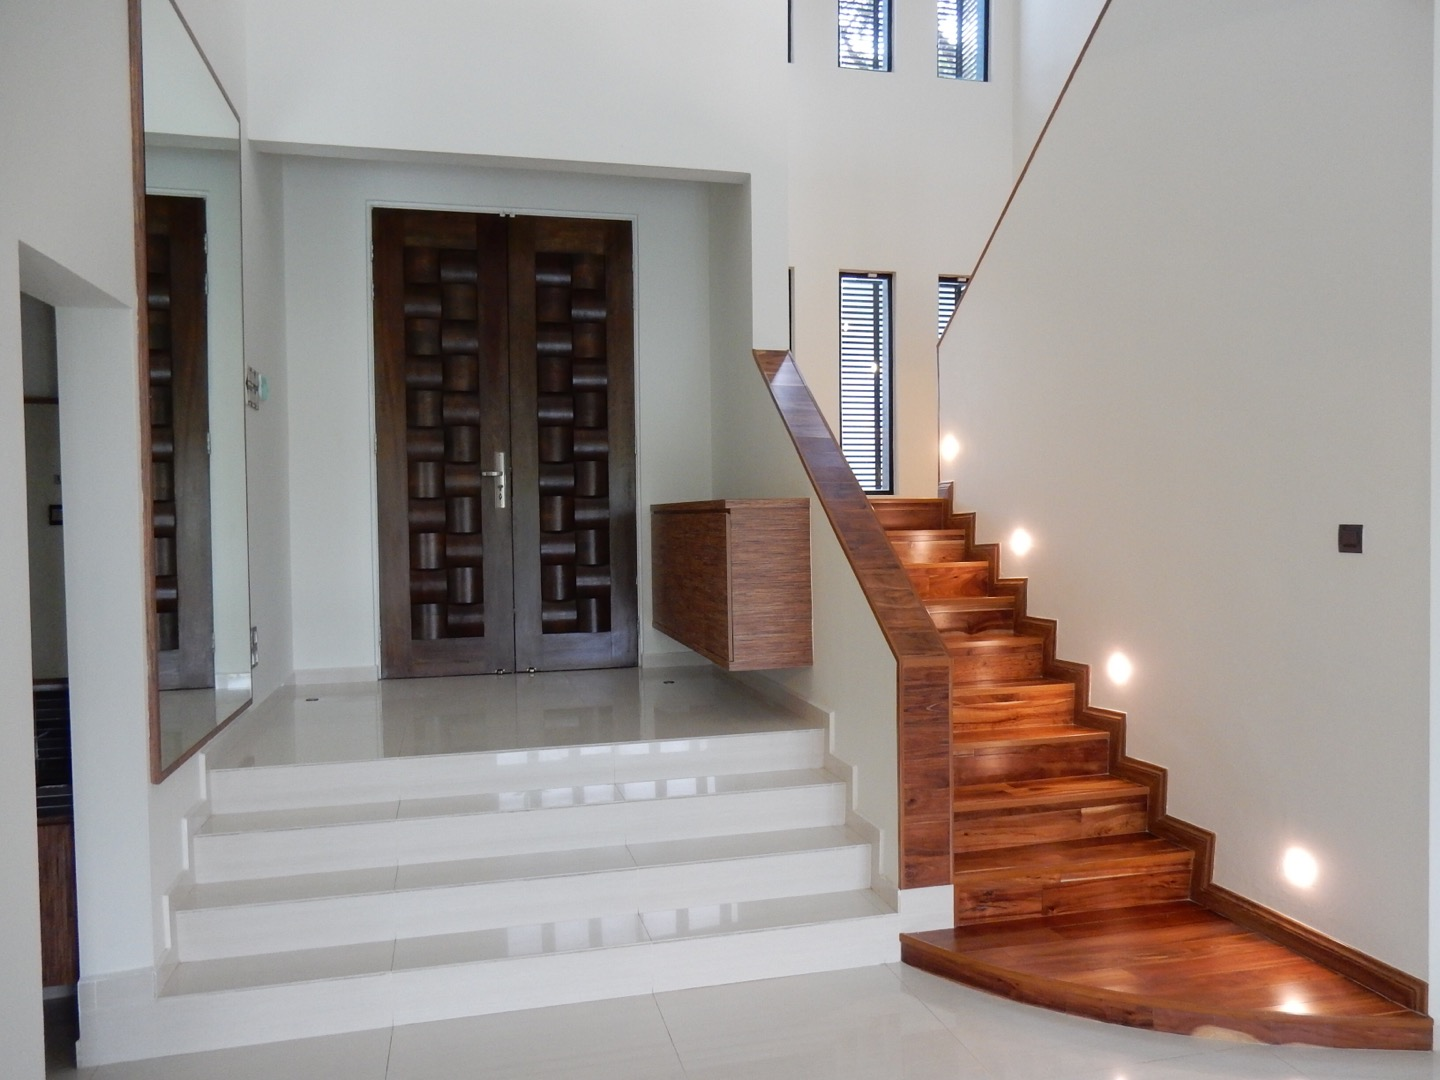 Entrance area and staircase